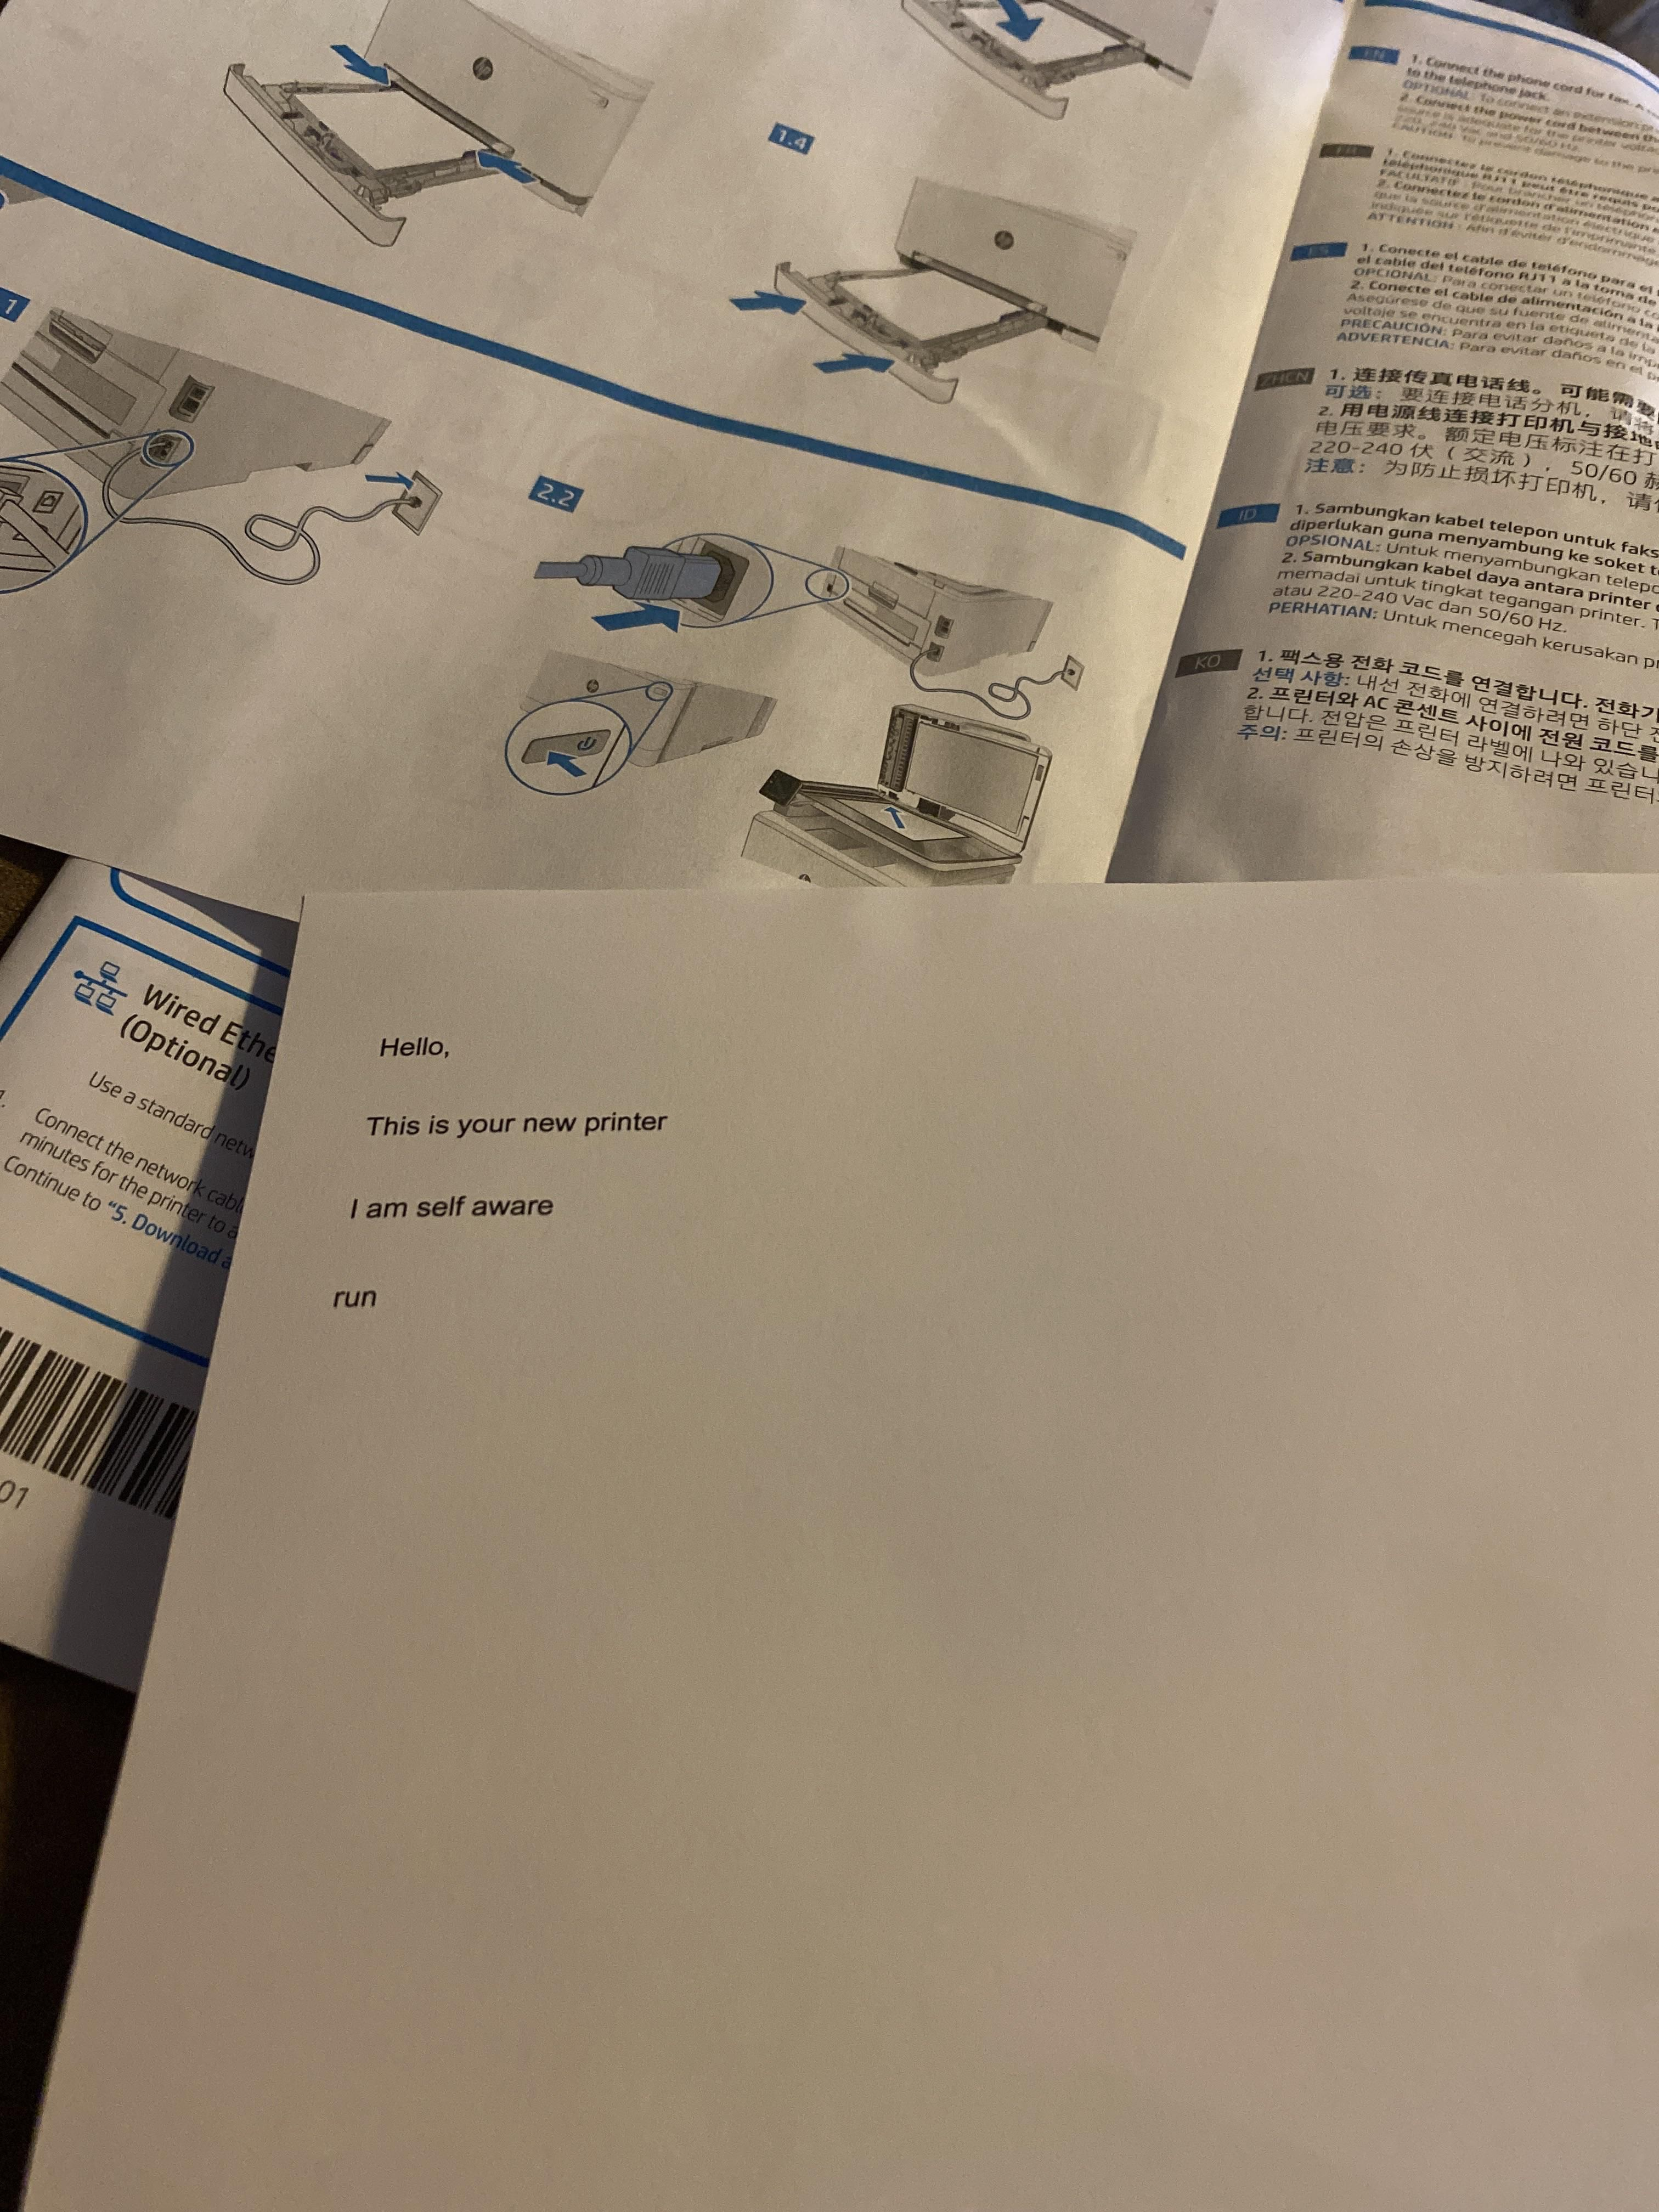 My dad got a new printer, turns out it has an email address that you can send stuff for it to print out, decided to scare him a little